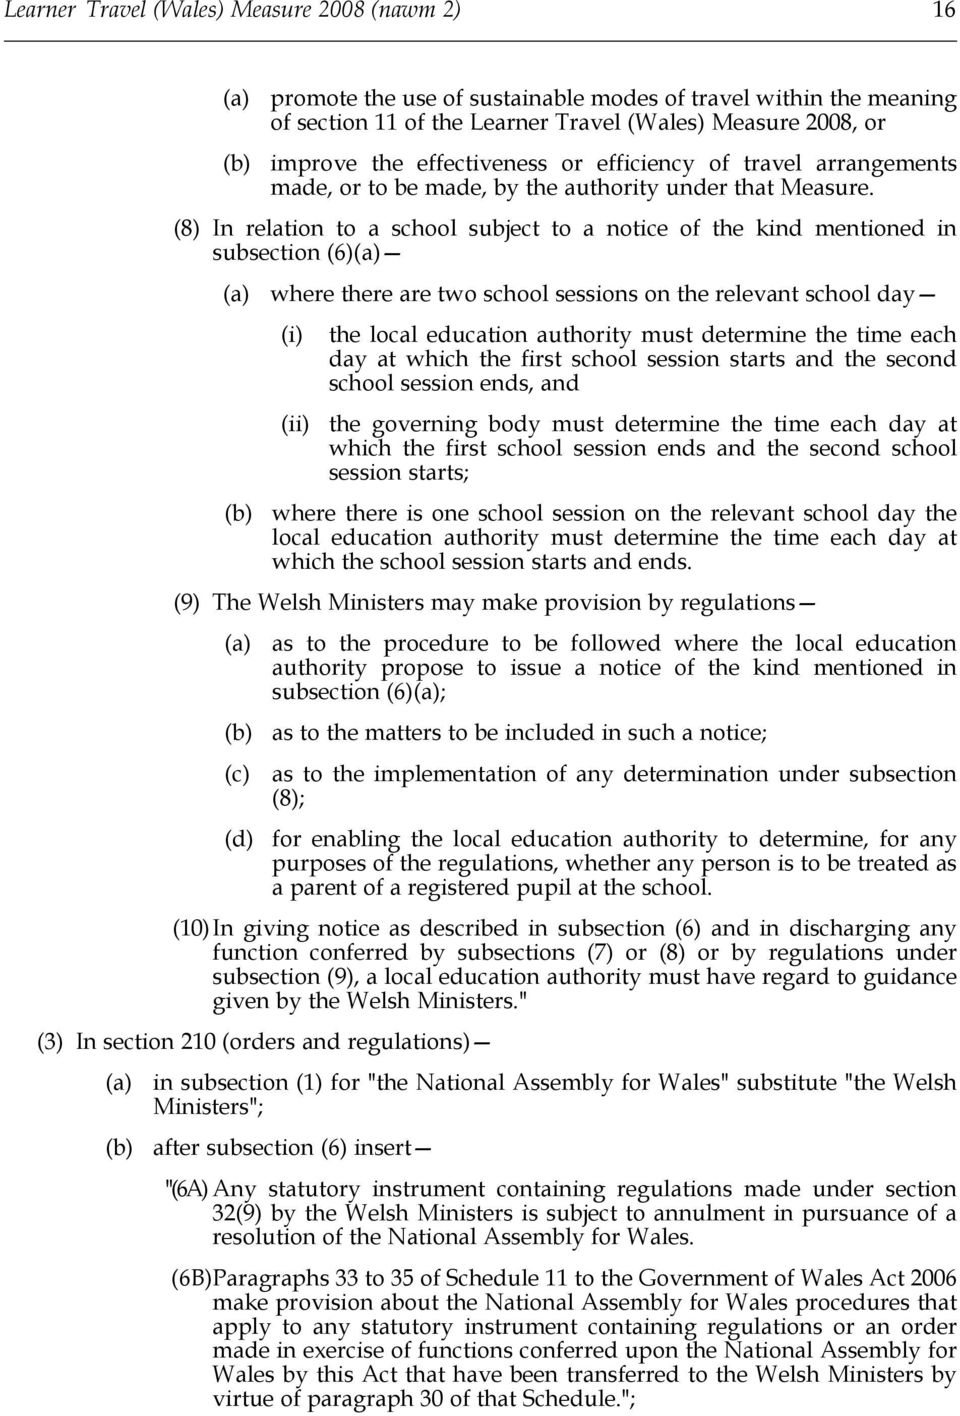 (8) In relation to a school subject to a notice of the kind mentioned in subsection (6) where there are two school sessions on the relevant school day (i) (ii) the local education authority must